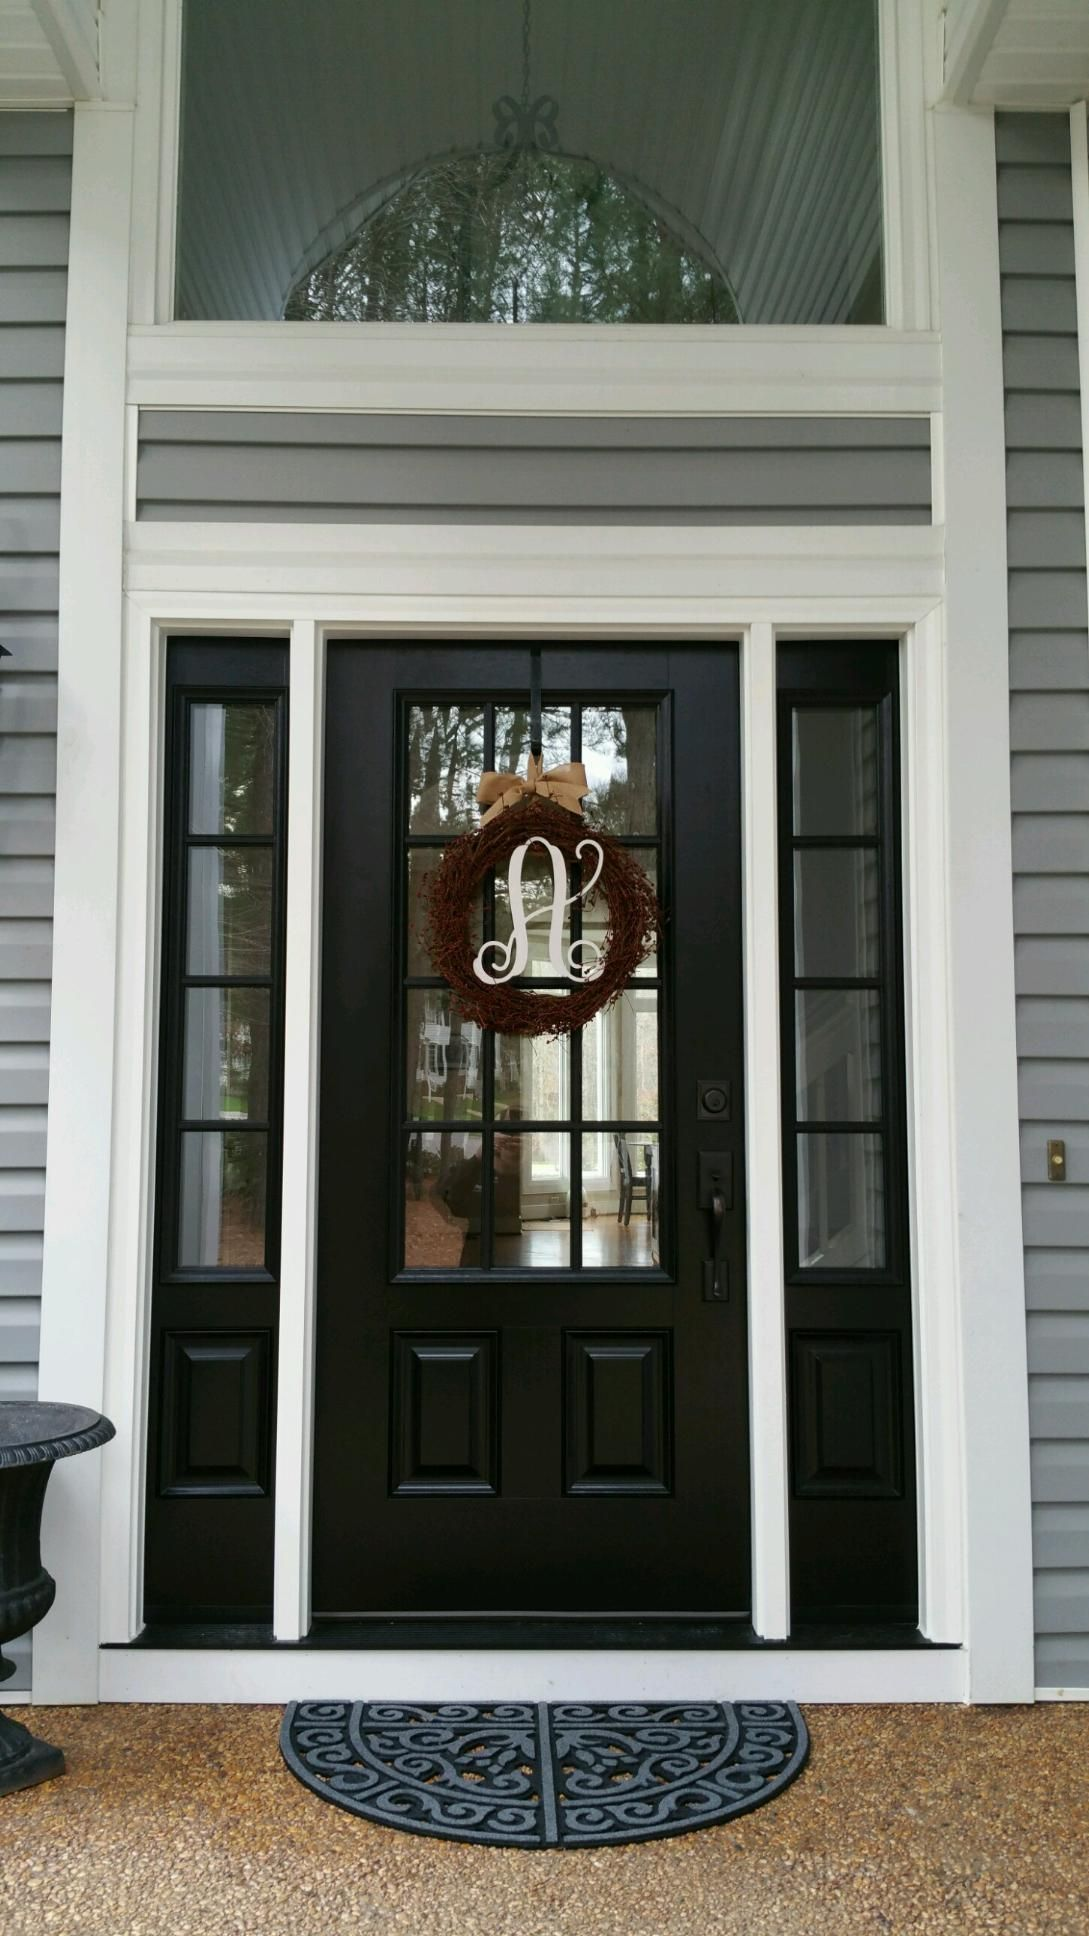 black front door with sidelightsModel 440 Signet Fiberglass Front Entry DoorCoal Black with aged